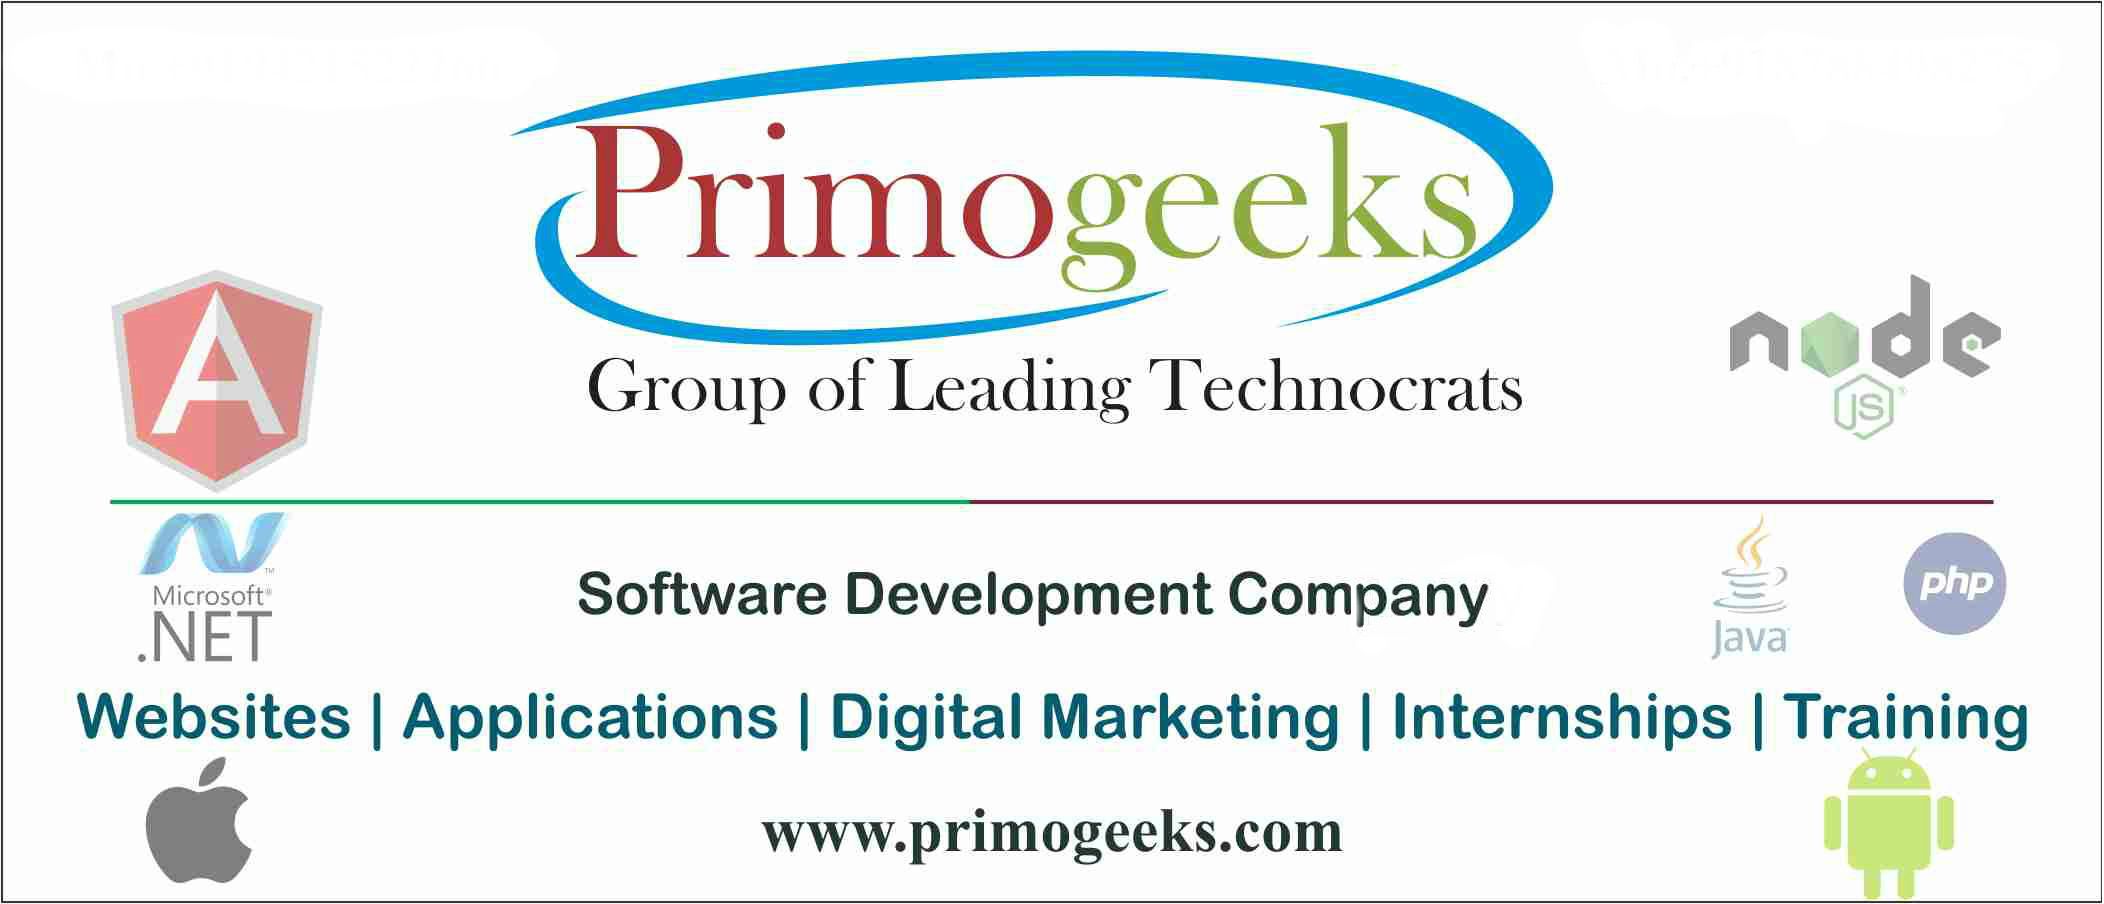 Web / Application / Software Development Company, Designing